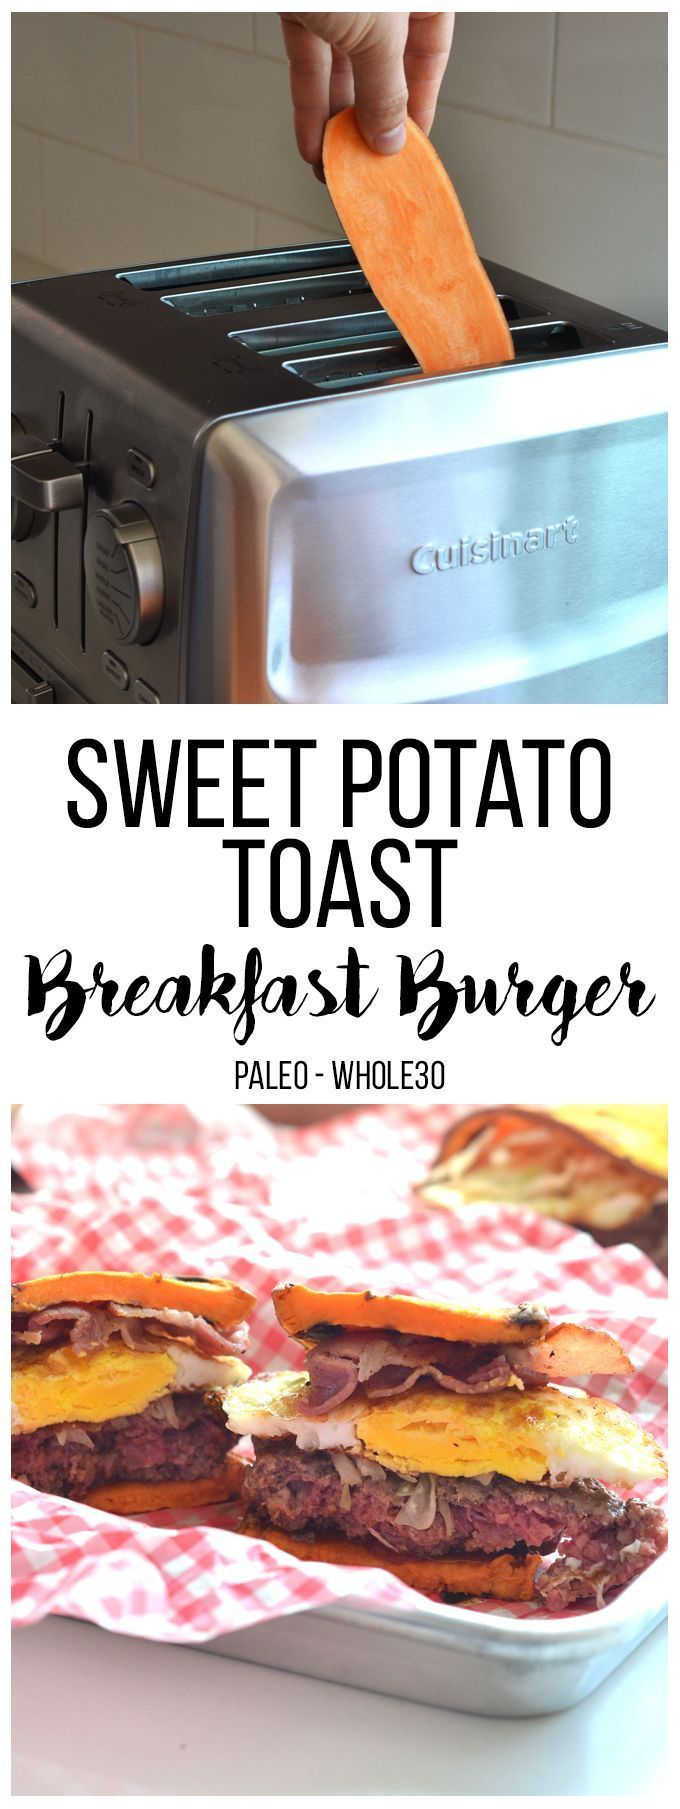 This Sweet Potato Toast Breakfast Burger is the perfect protein packed whole30 and paleo breakfast option!